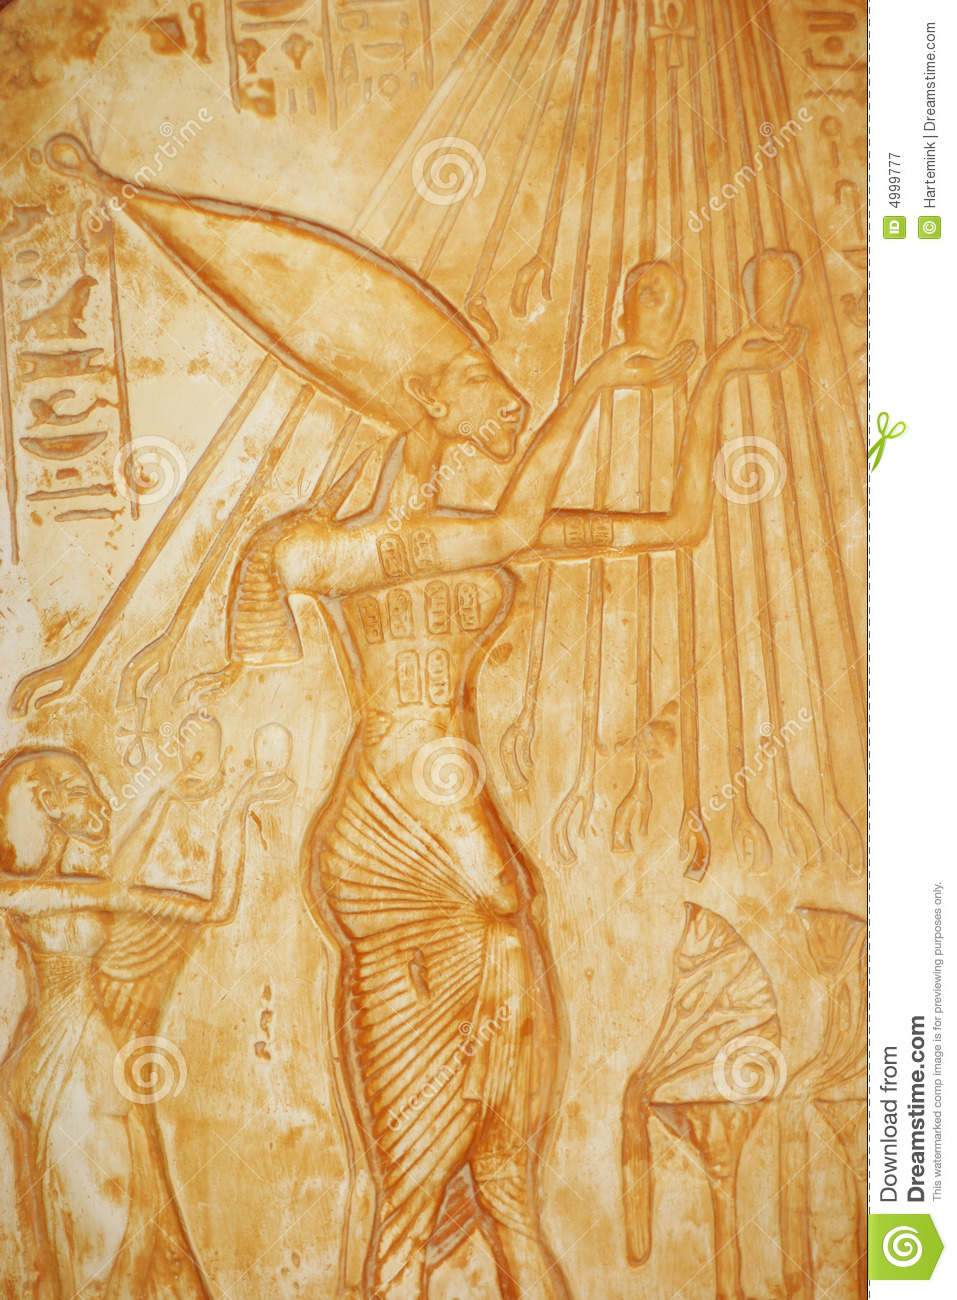 ancient egyptian depiction of food offering royalty free